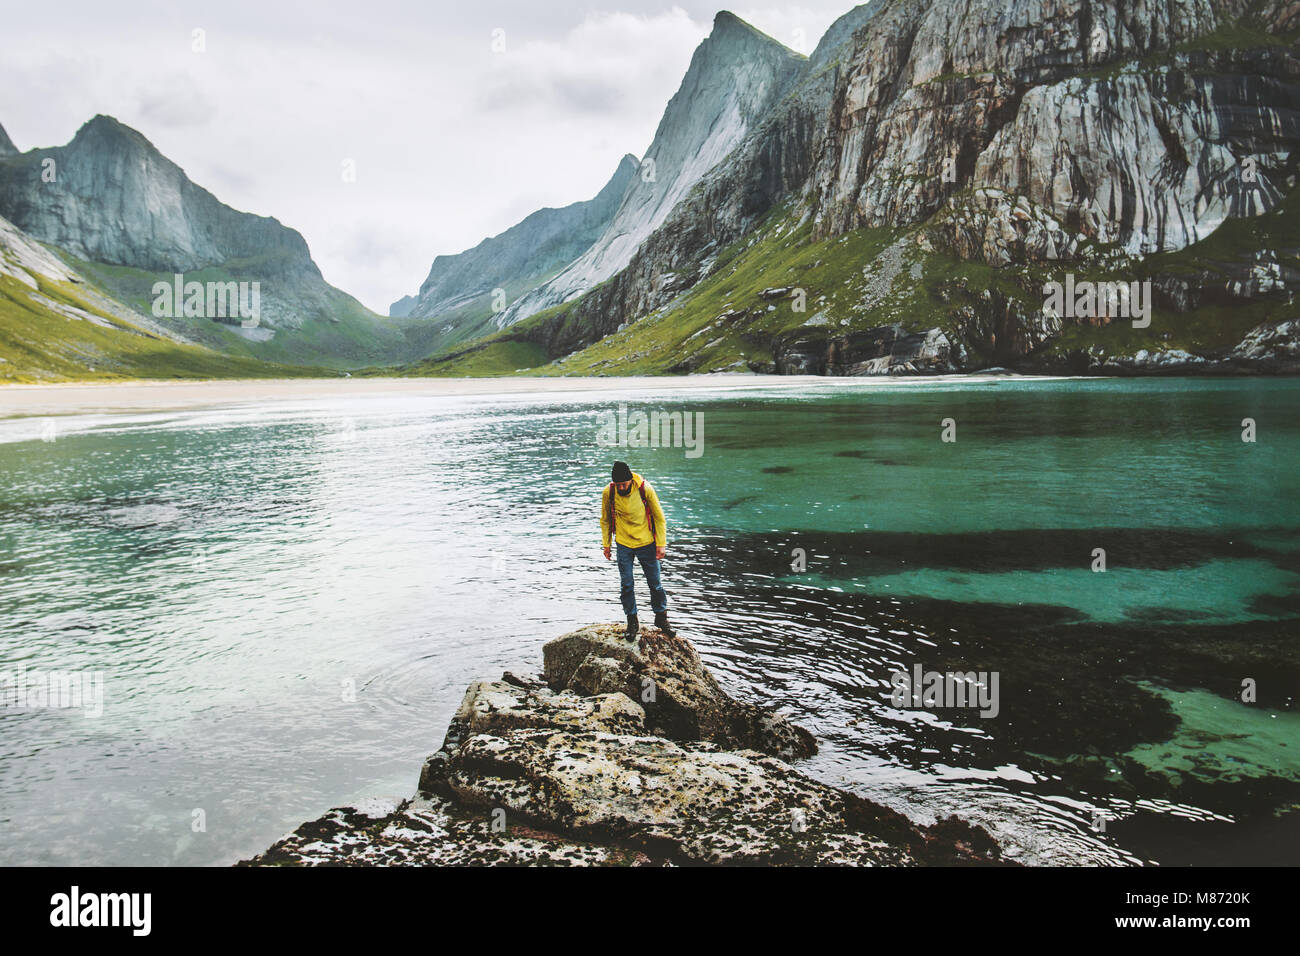 Traveler Man standing alone at sea stone Travel lifestyle adventure concept adventure outdoor active vacations wild - Stock Image